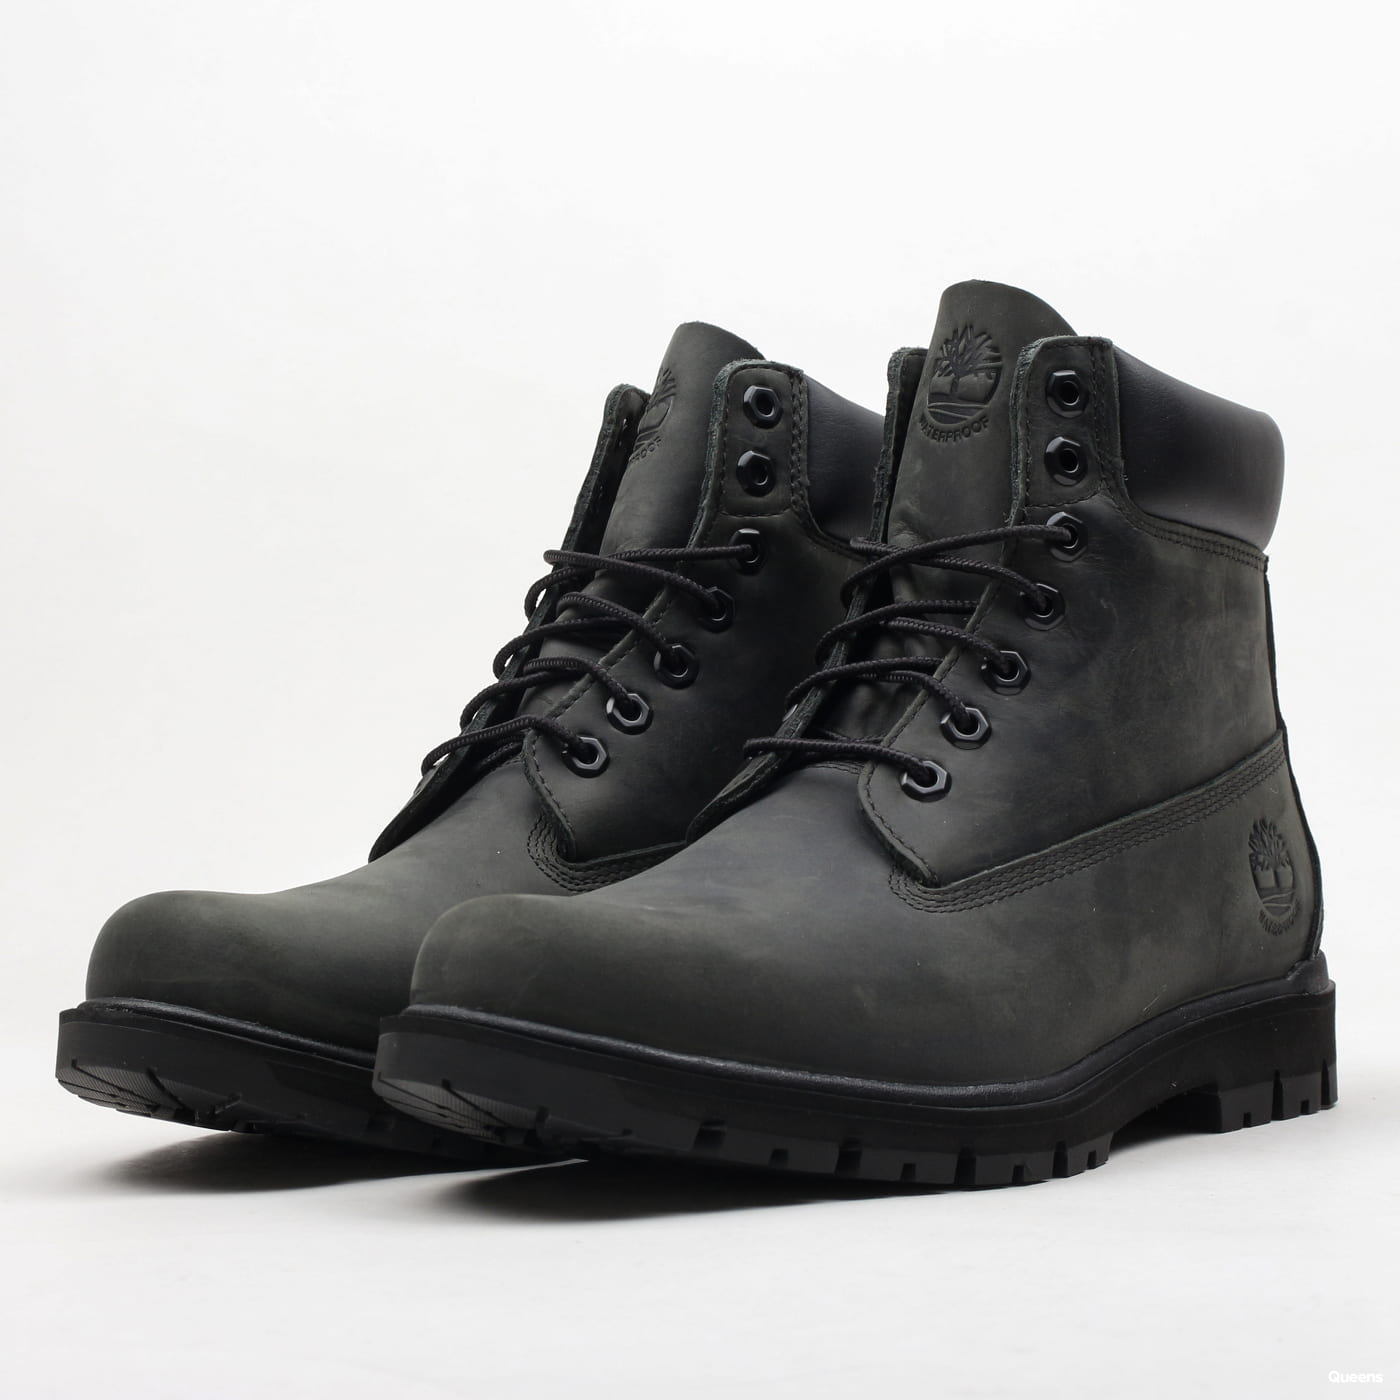 cuchara Contrapartida empeorar  Men's winter boots Timberland Radford 6 Inch WP Boot phantom (A1UOL - PHA)  – Queens 💚